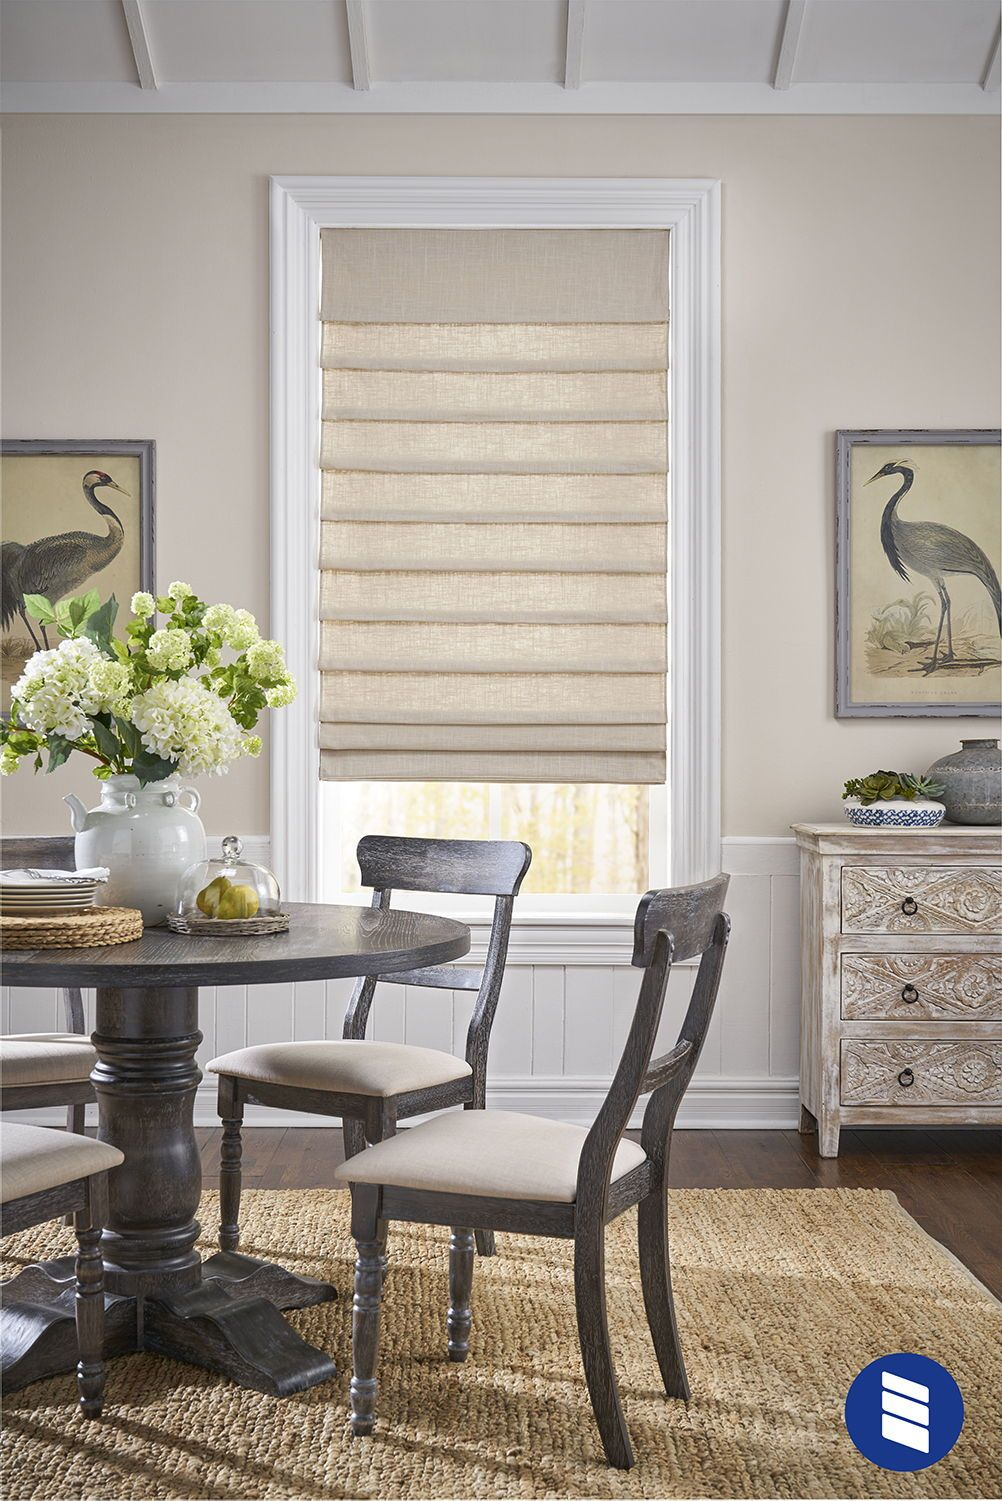 Blinds Premier Roman Shades Give Your Windows The Look Of High End Custom At An Affordable Price Choose From A Variety Textures And Fabrics